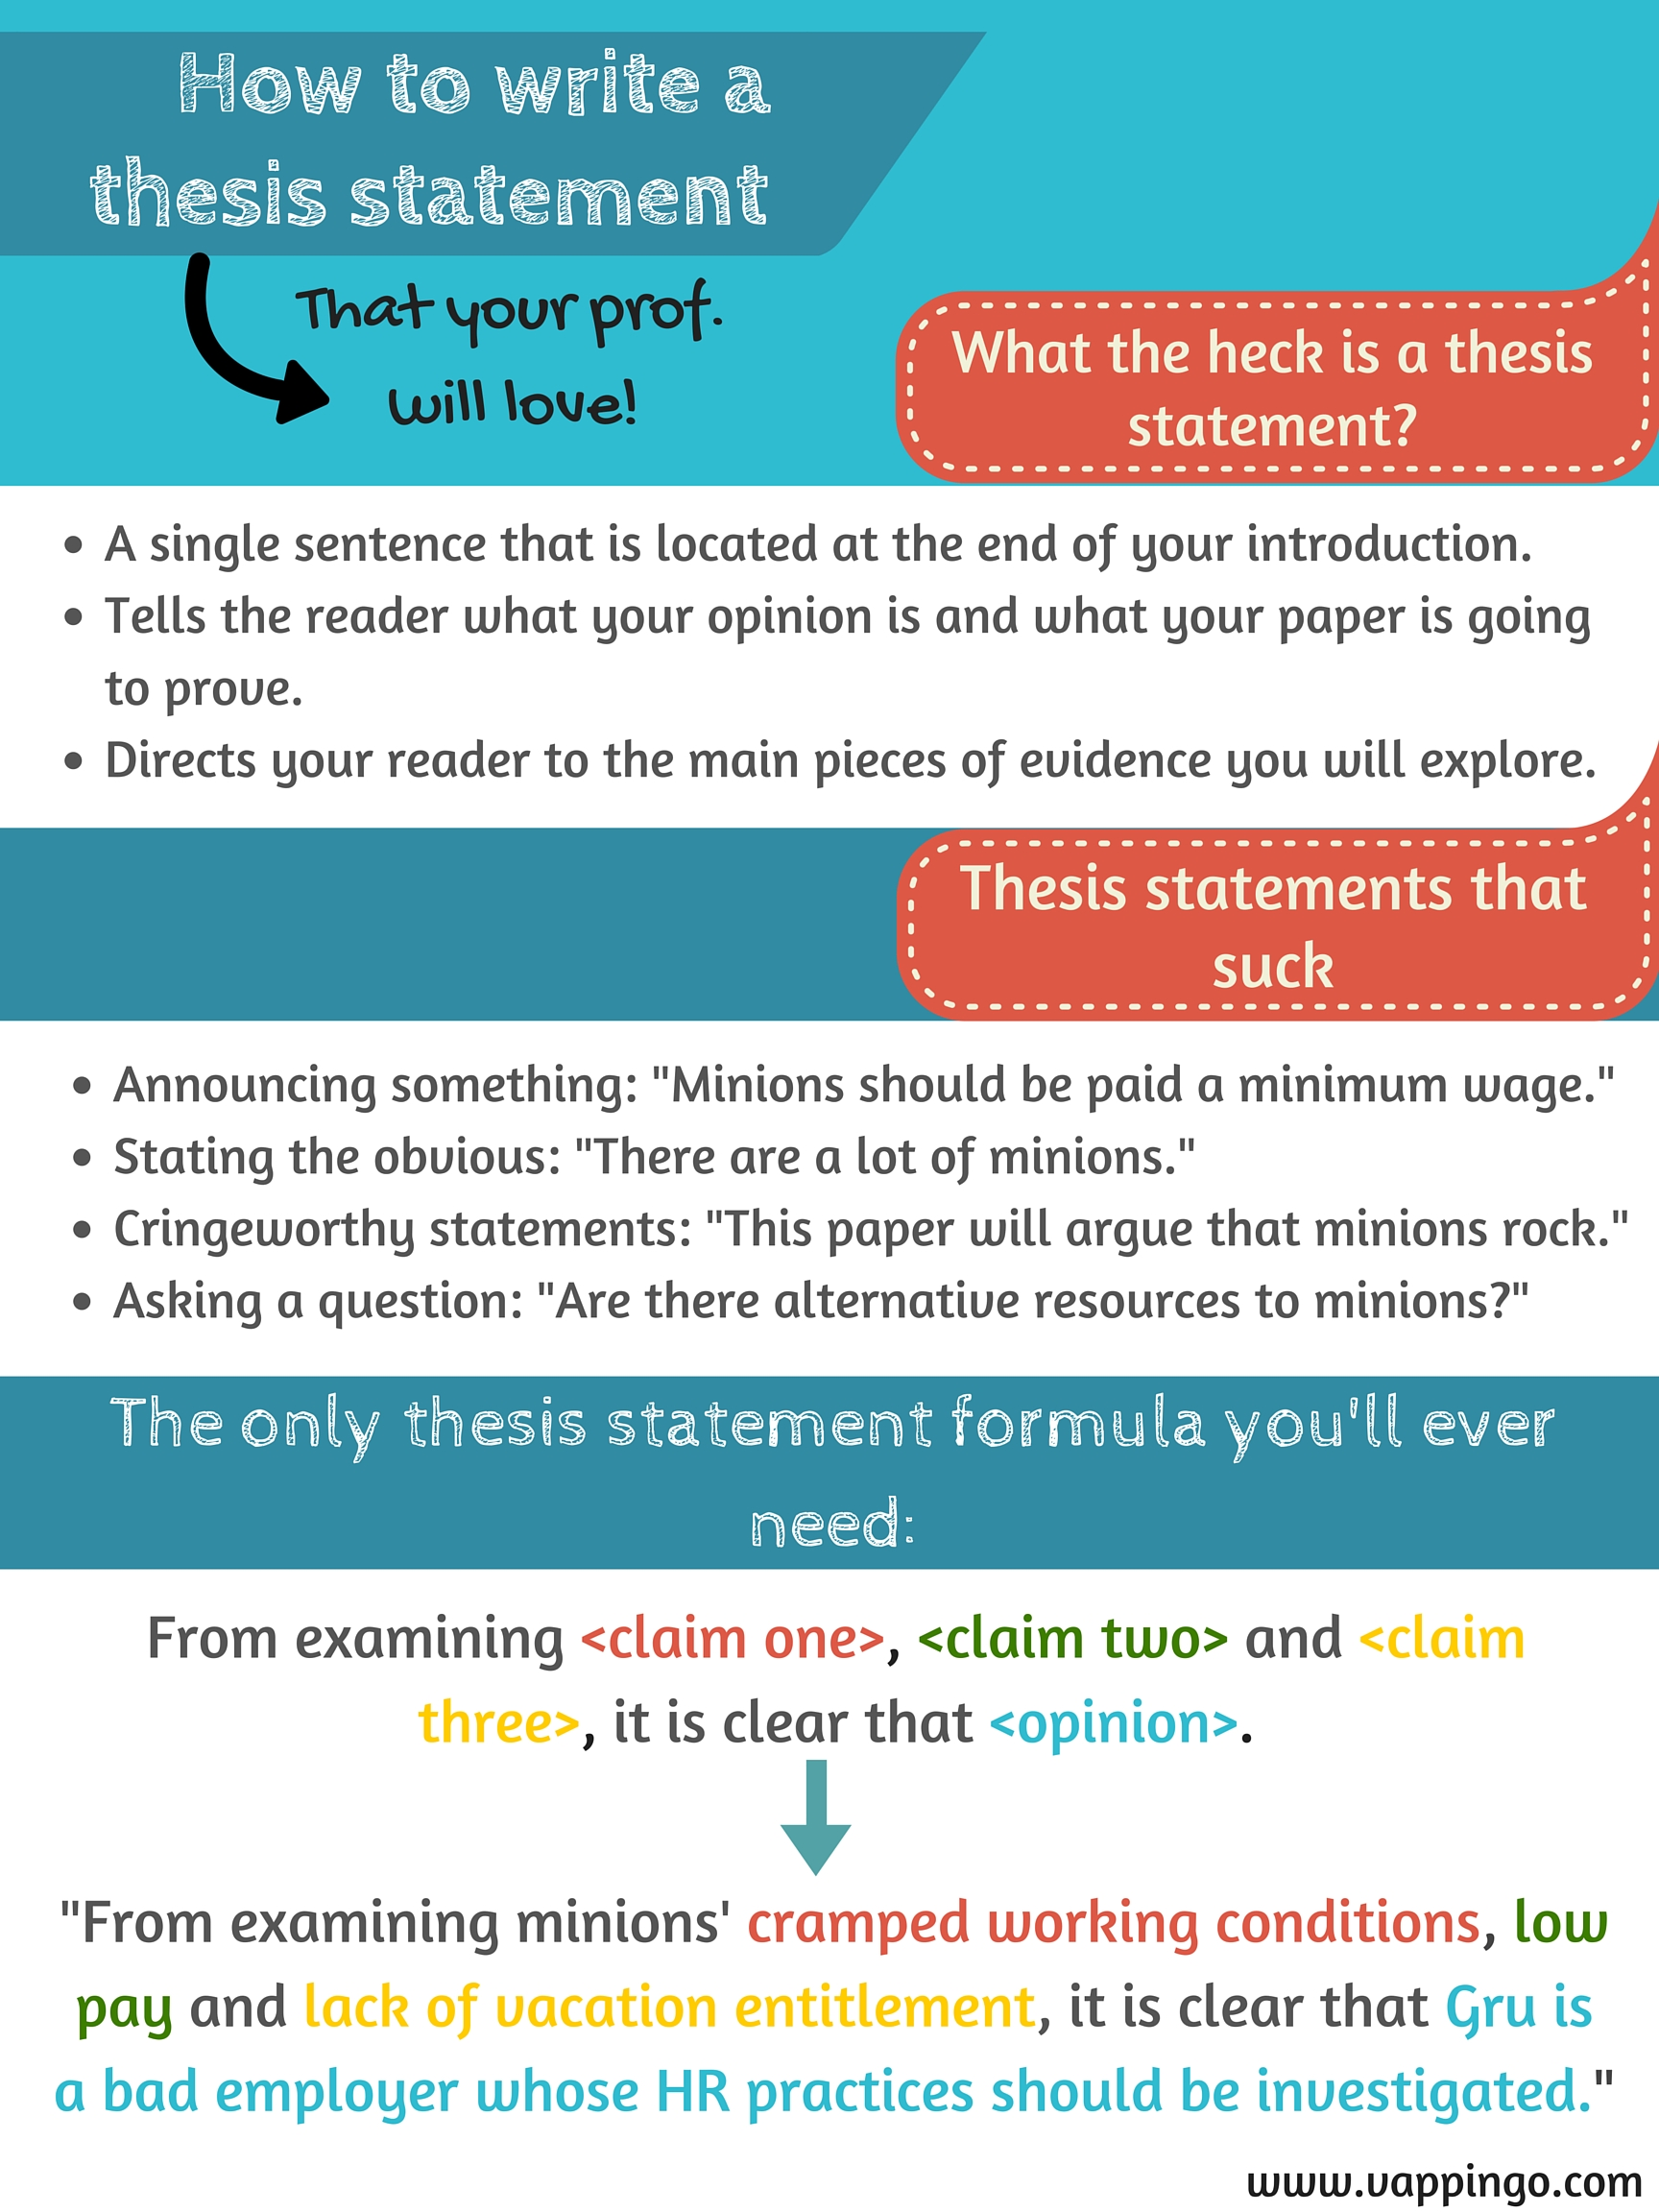 017 Essay Example How To Write Claim For An Argumentative Thesis Statement Frightening A Good Rebuttal In Full